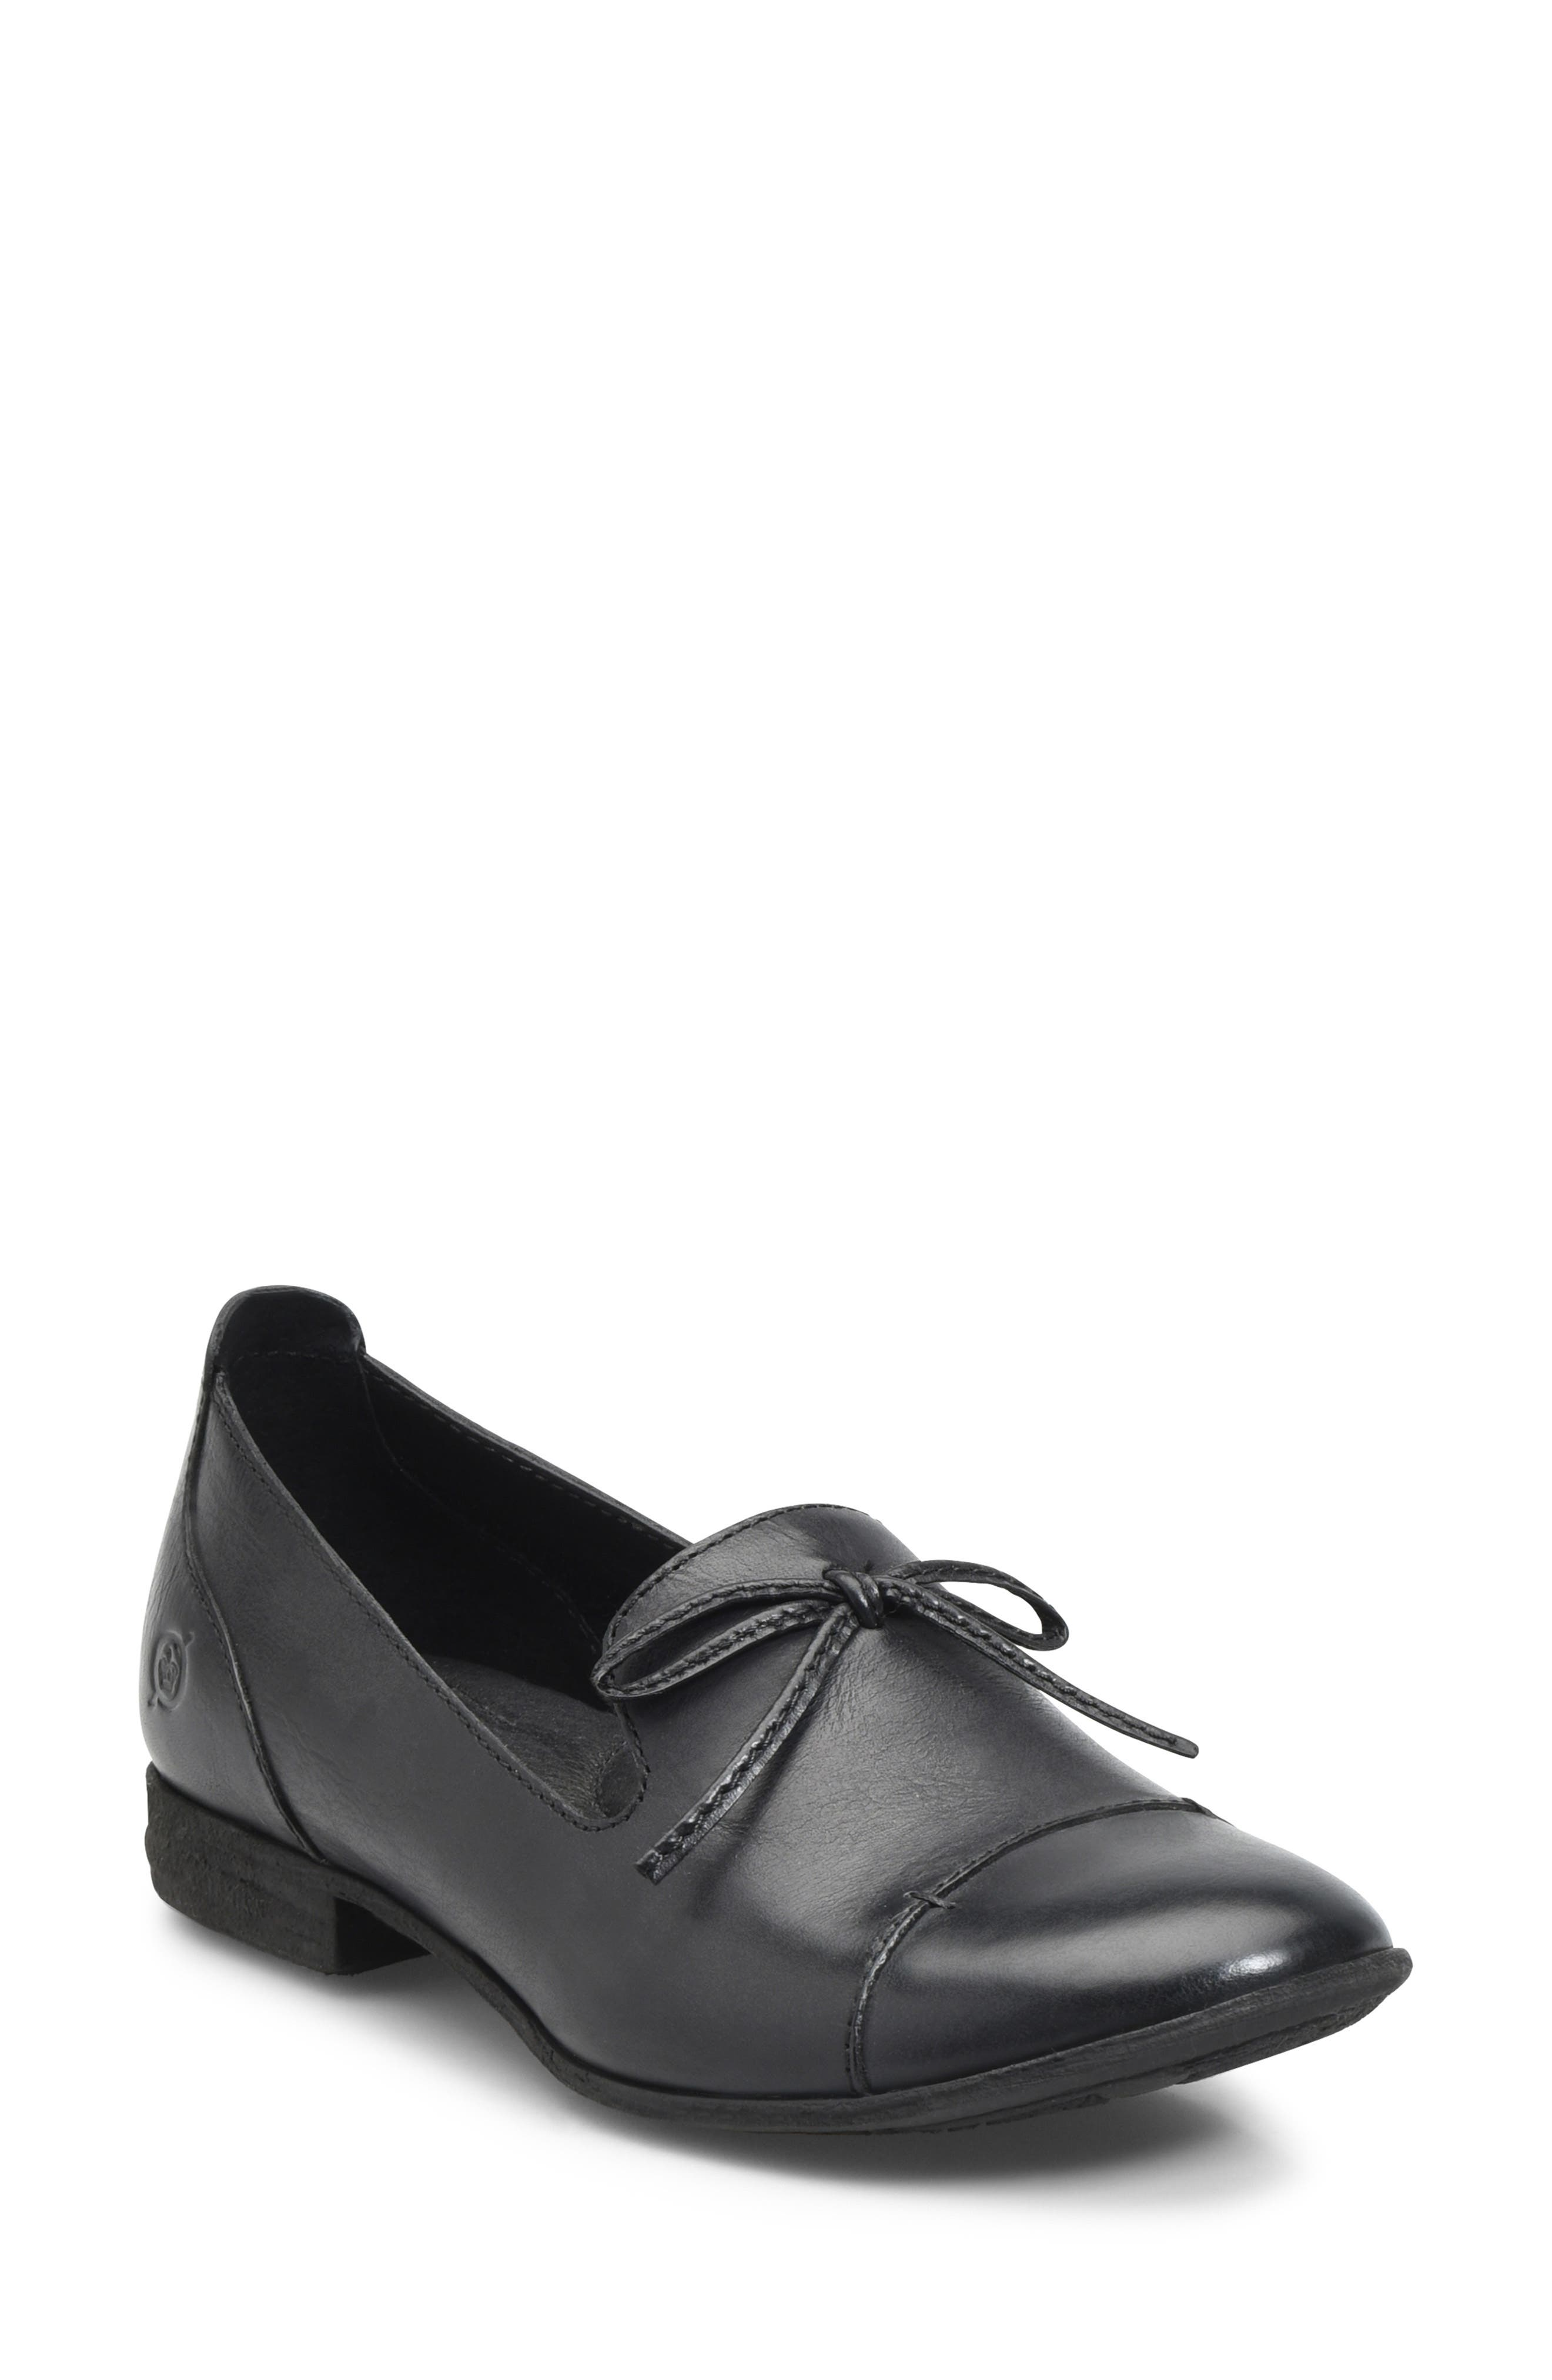 Gallatin Loafer,                             Main thumbnail 1, color,                             BLACK LEATHER